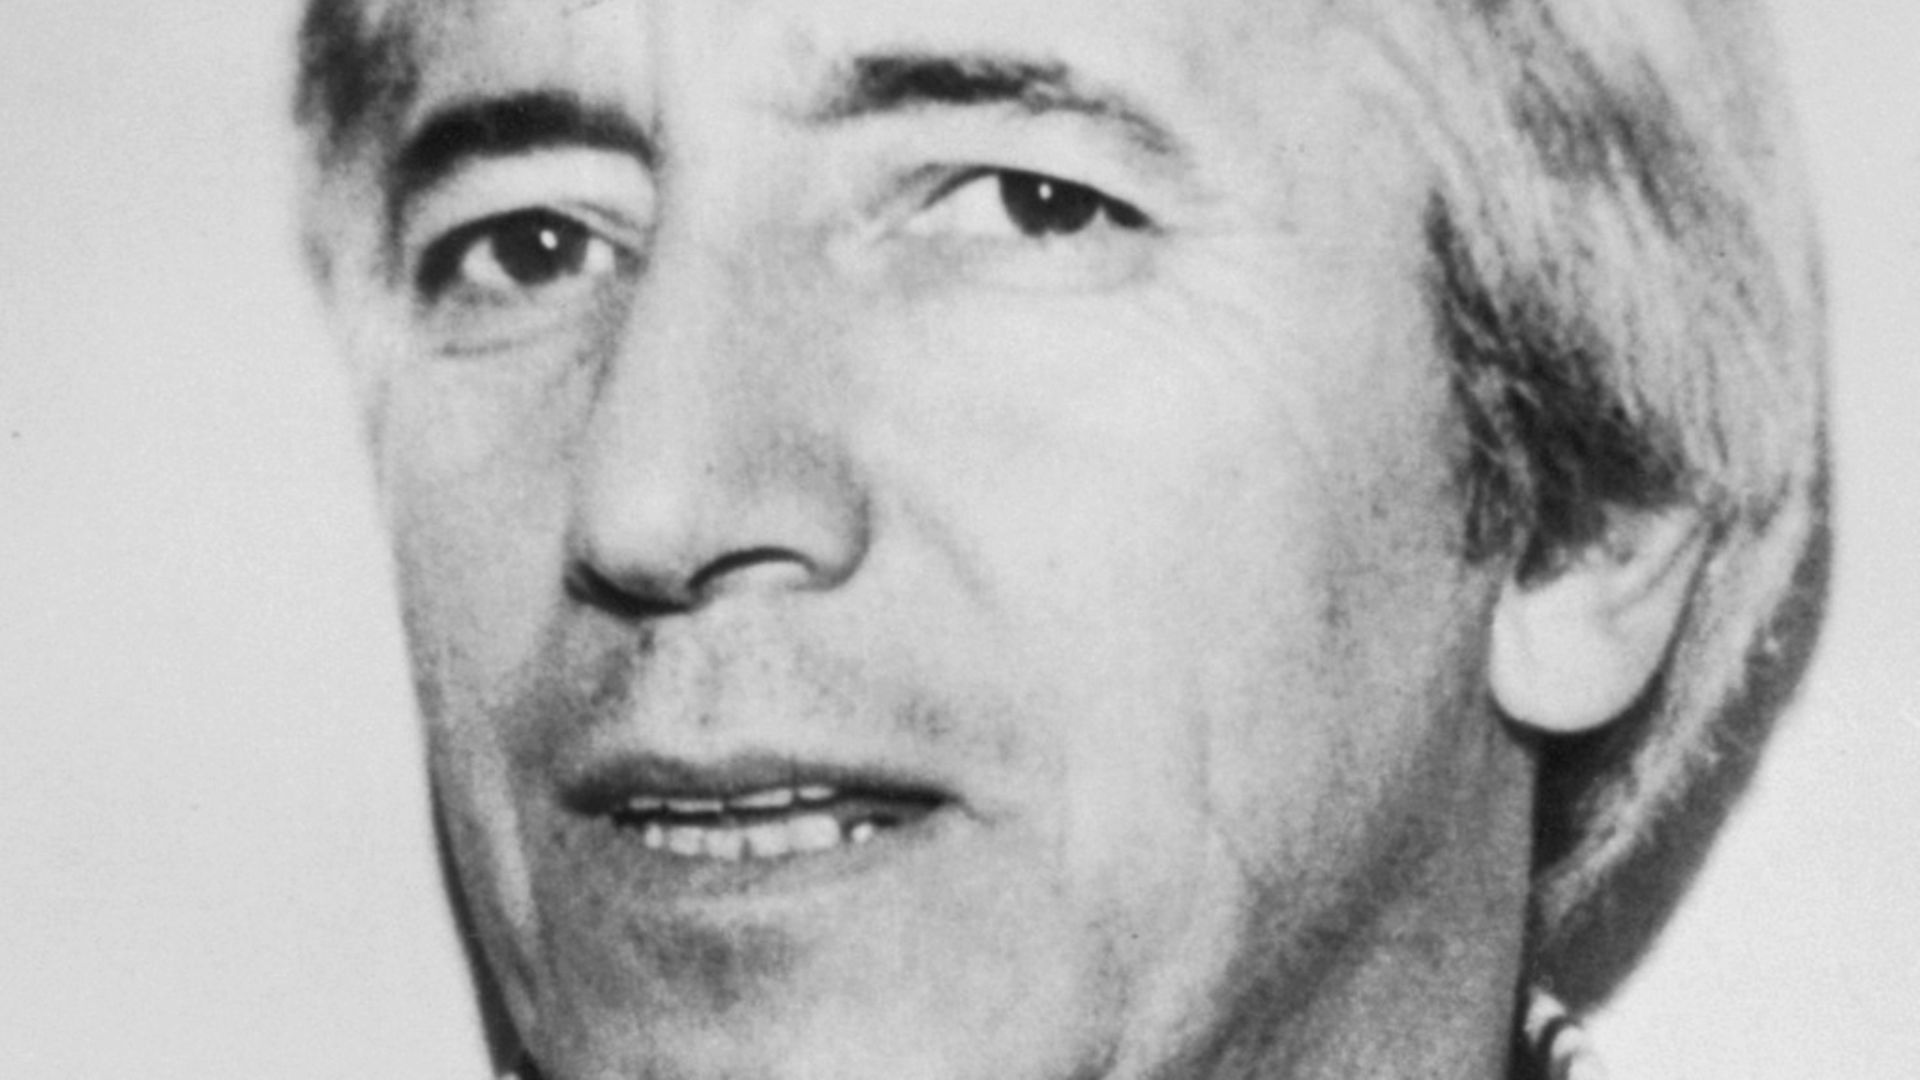 Georgi Markov was murdered when jabbed by a poison-tipped umbrella while waiting for a bus. Photo: Getty Images - Credit: Bettmann Archive